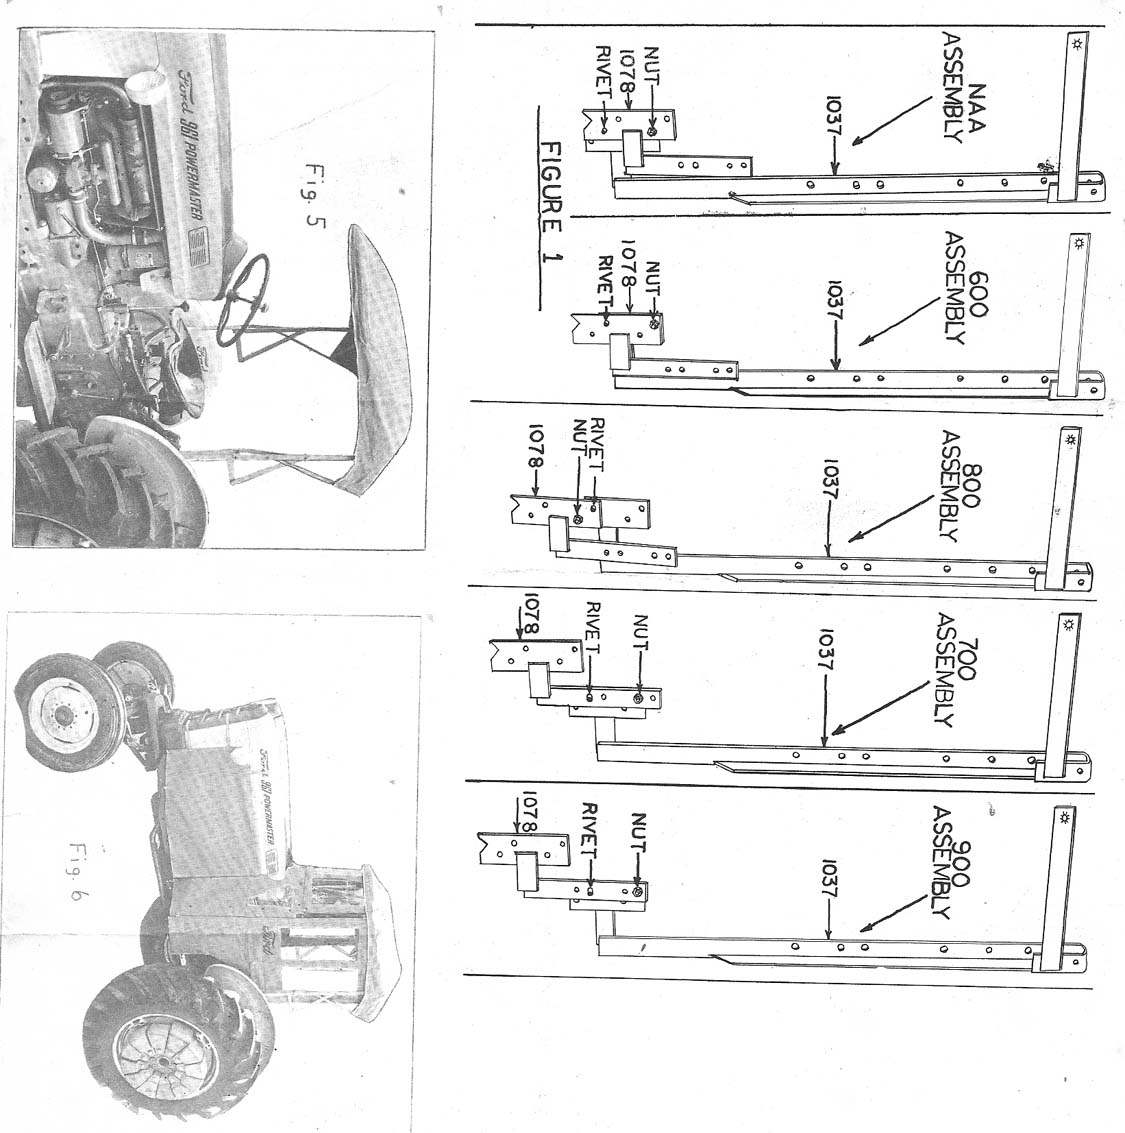 Ford 3930 Transmission Parts Diagram. Ford. Auto Wiring